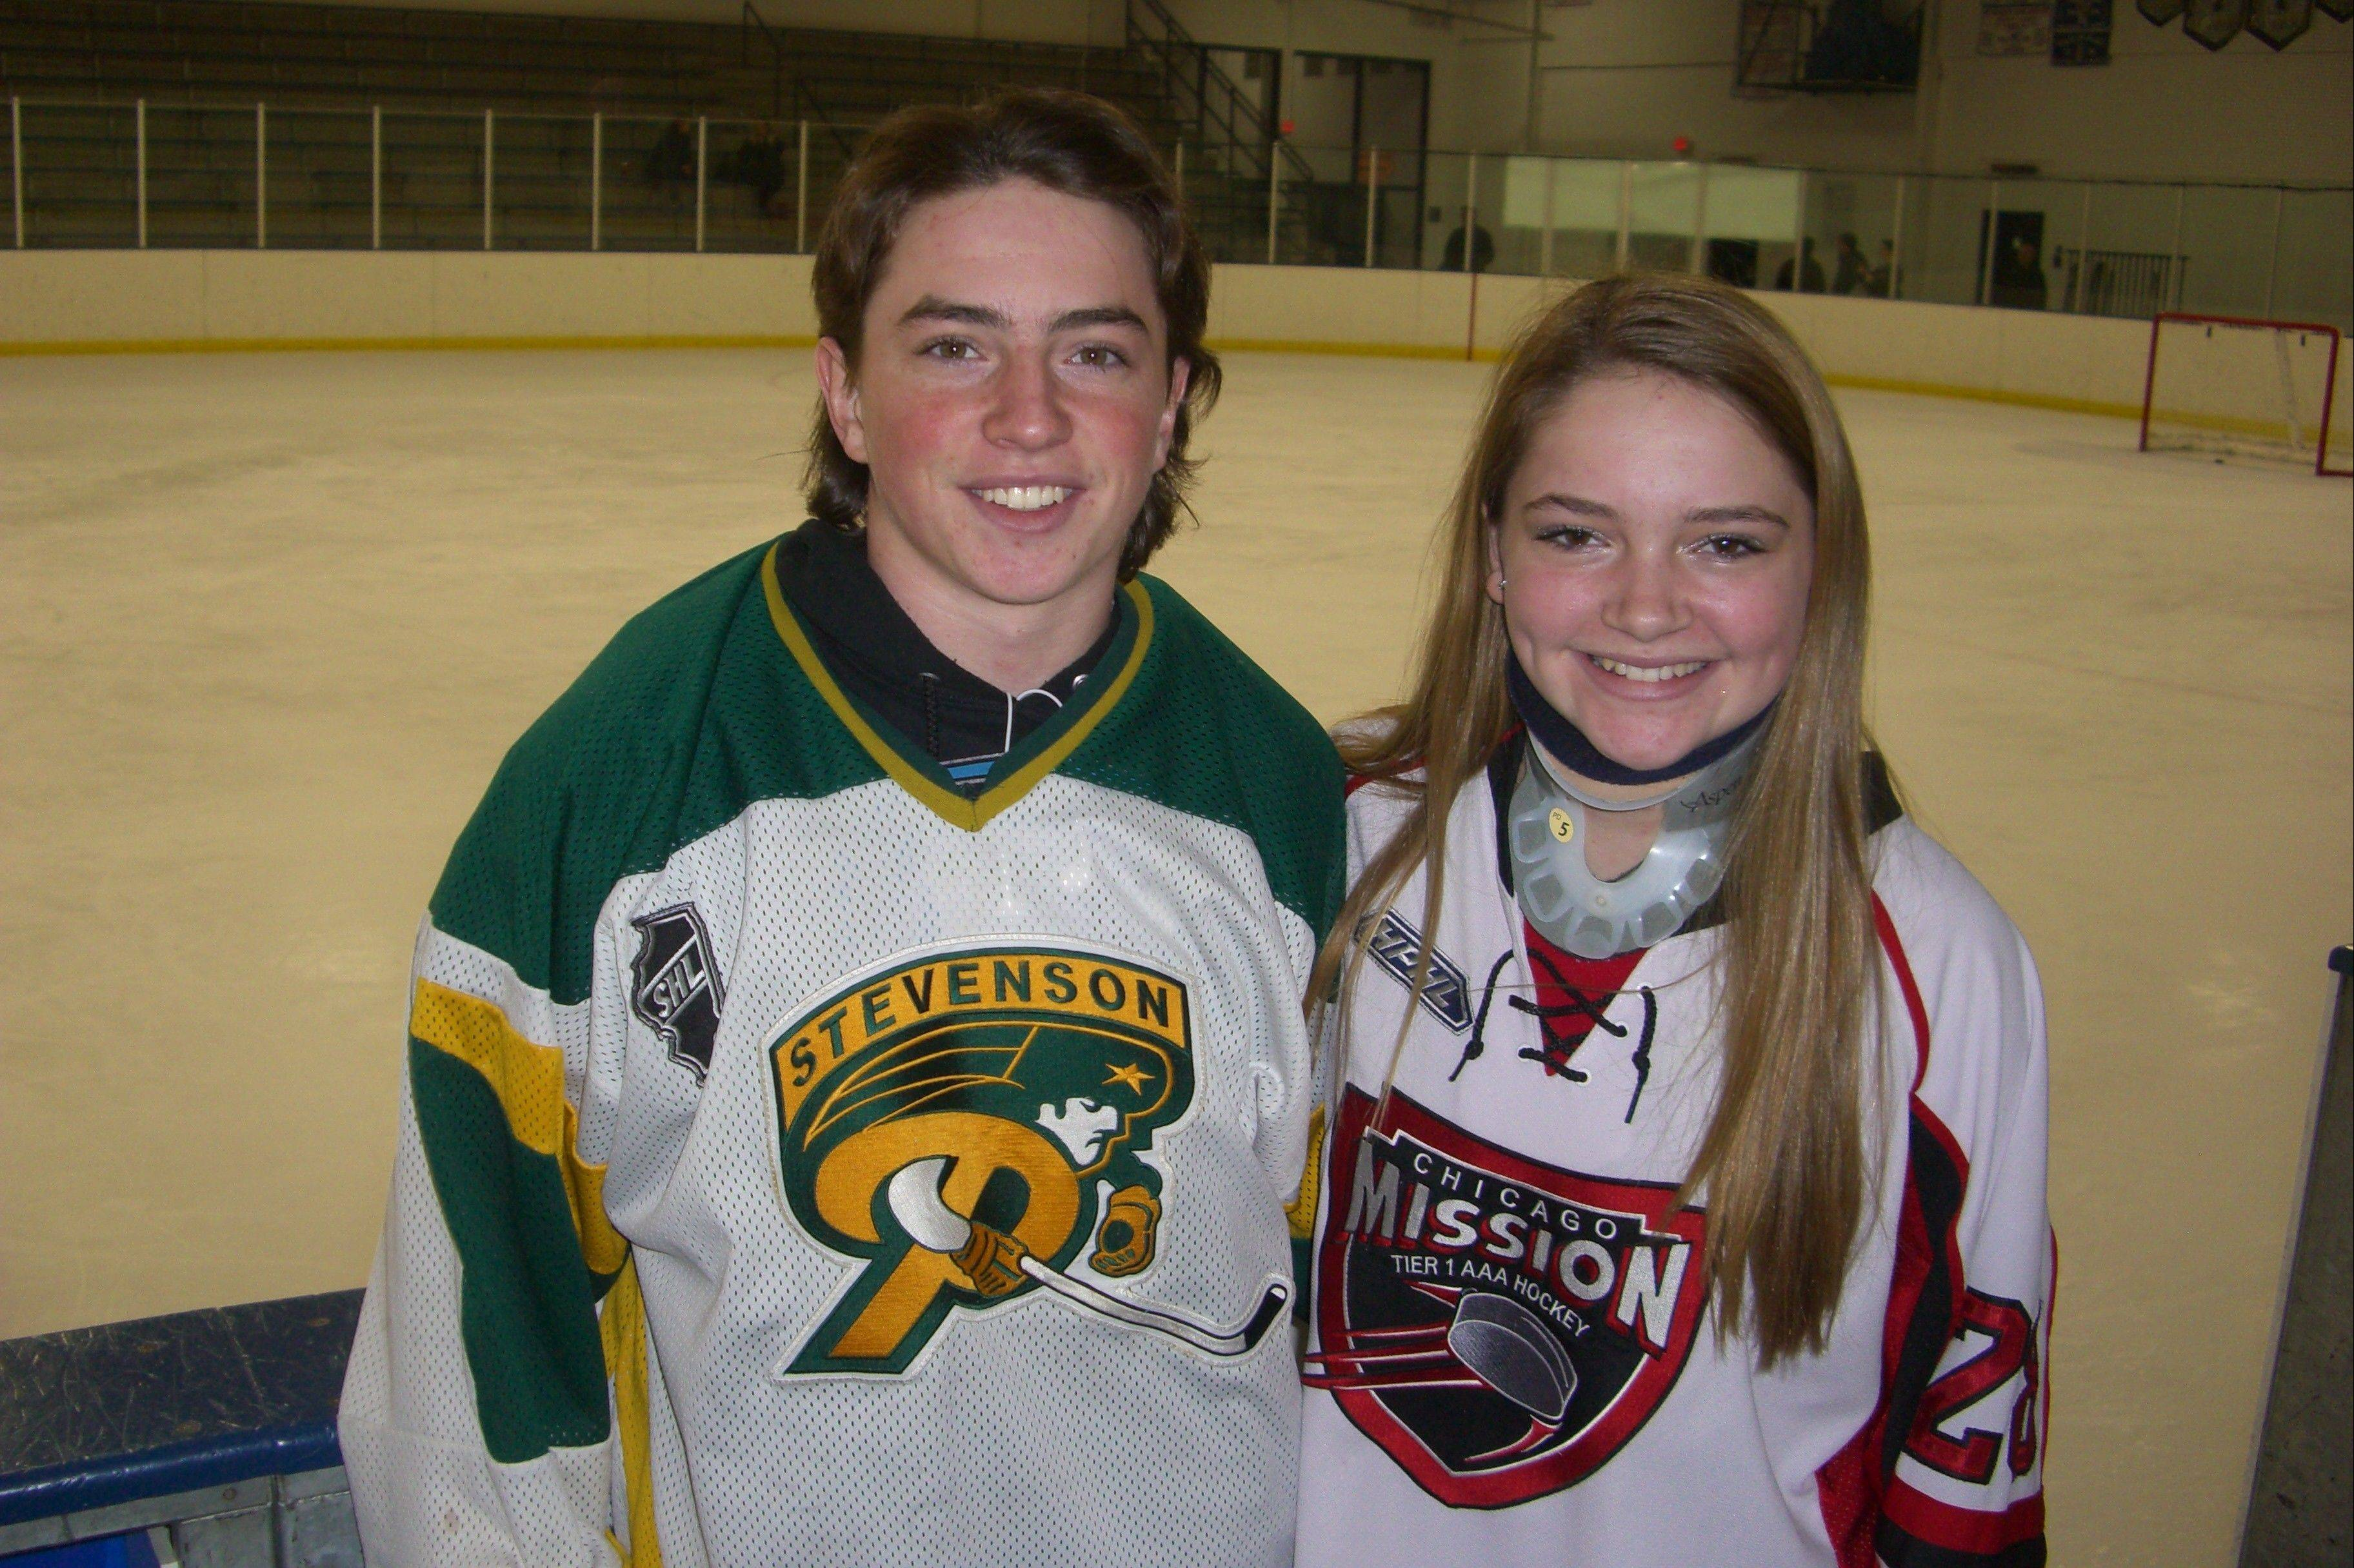 Eighth-grader Courtney Patten, who suffered a broken neck during a hockey practice last fall, has been resigned, for now, to cheering on her brother, Stevenson junior Trevor Patten.